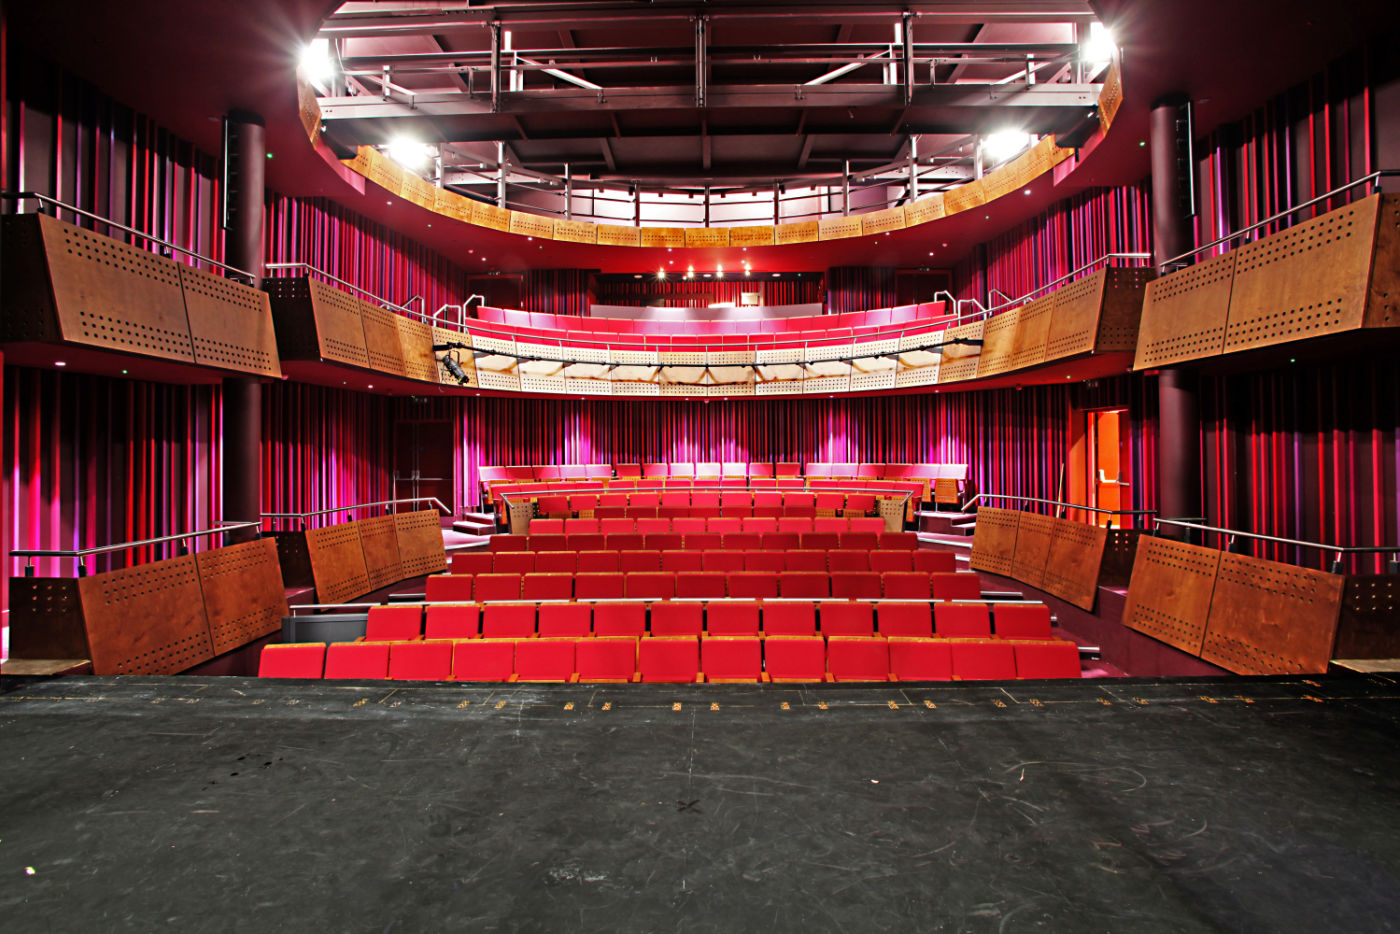 Bright red chairs in refurbished theatre